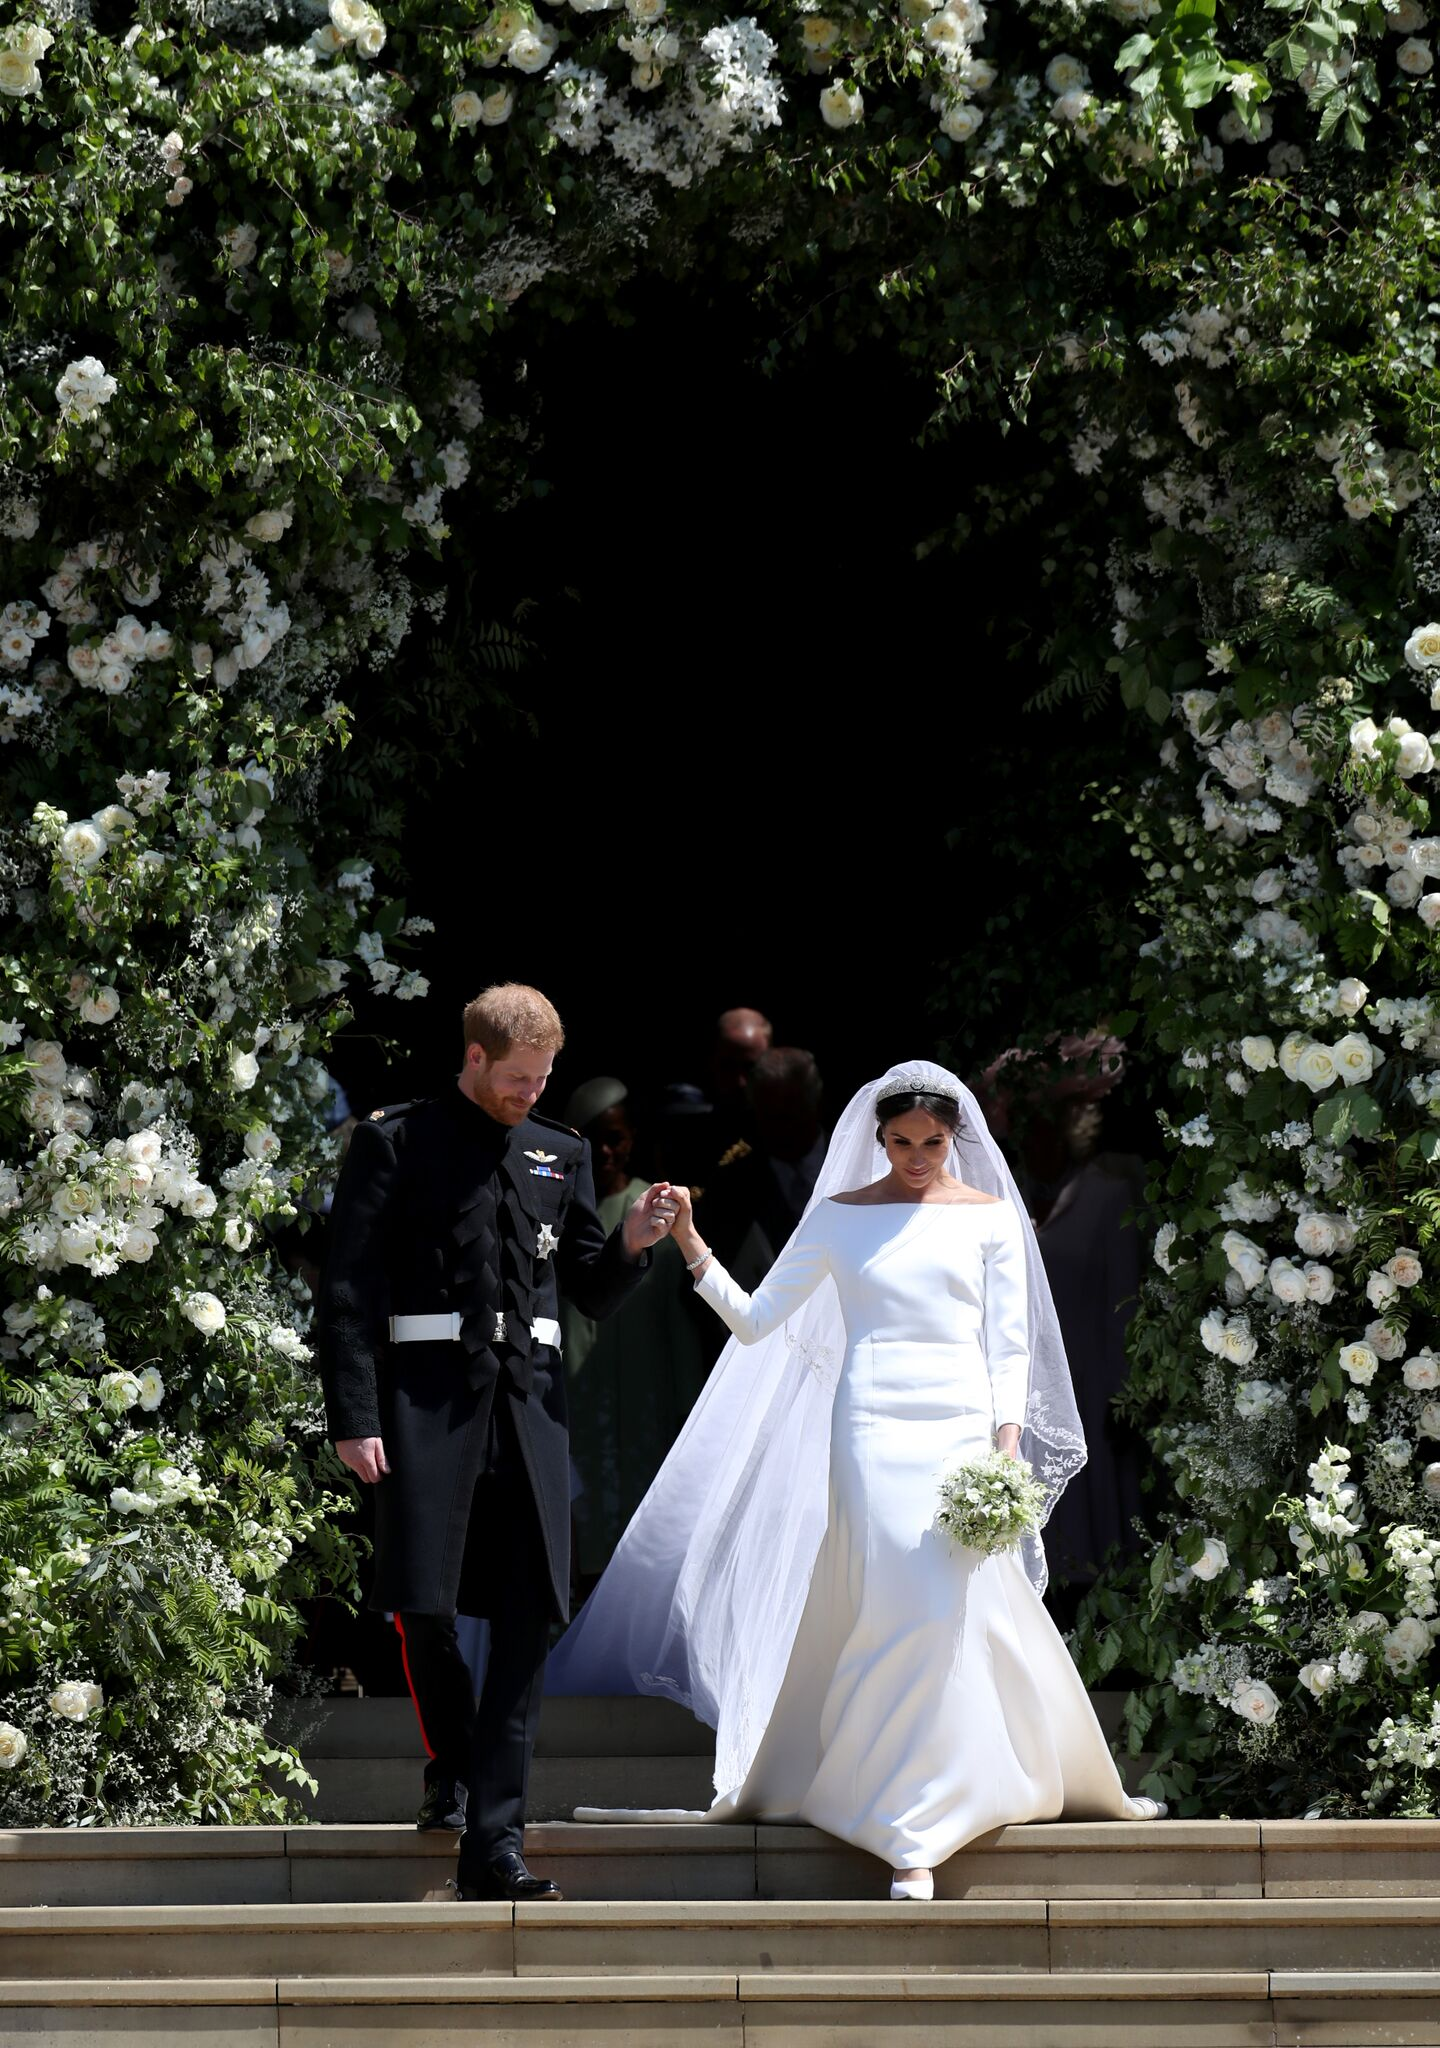 Meghan Markle and Prince Harry surrounded by flowers on their wedding day | Getty Images / Global Images Ukraine